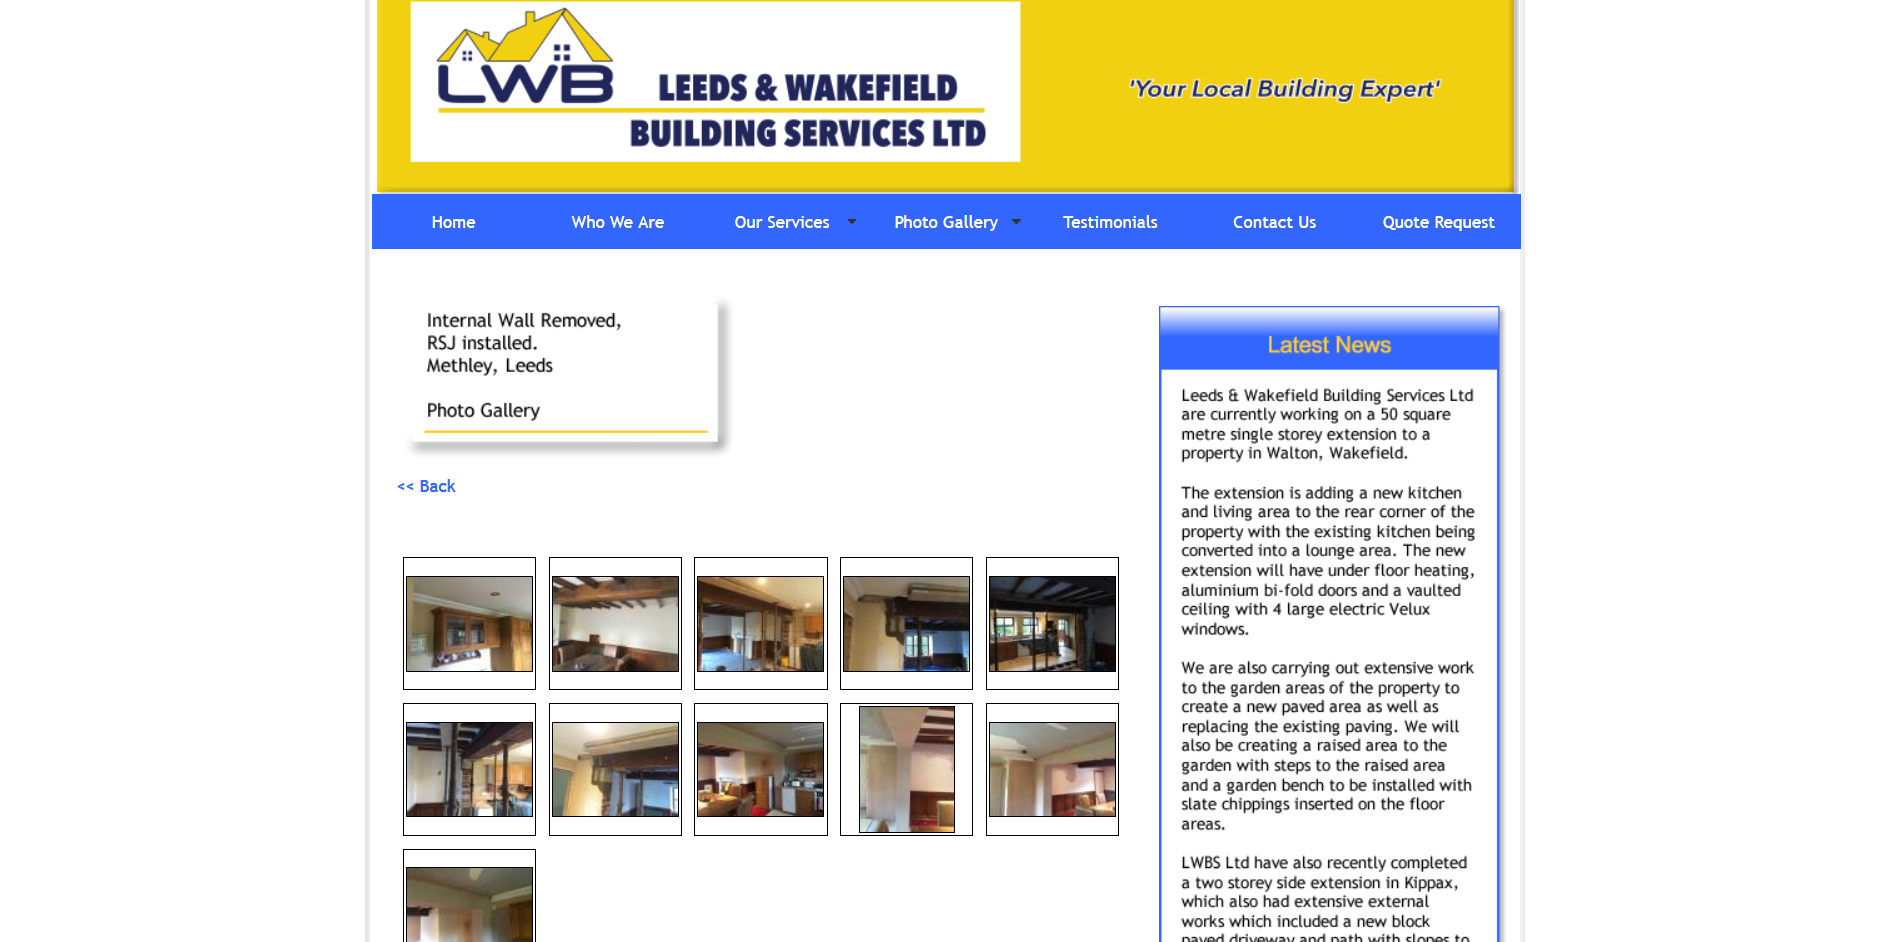 Sample of the design work on the Leeds and Wakefield Builders website